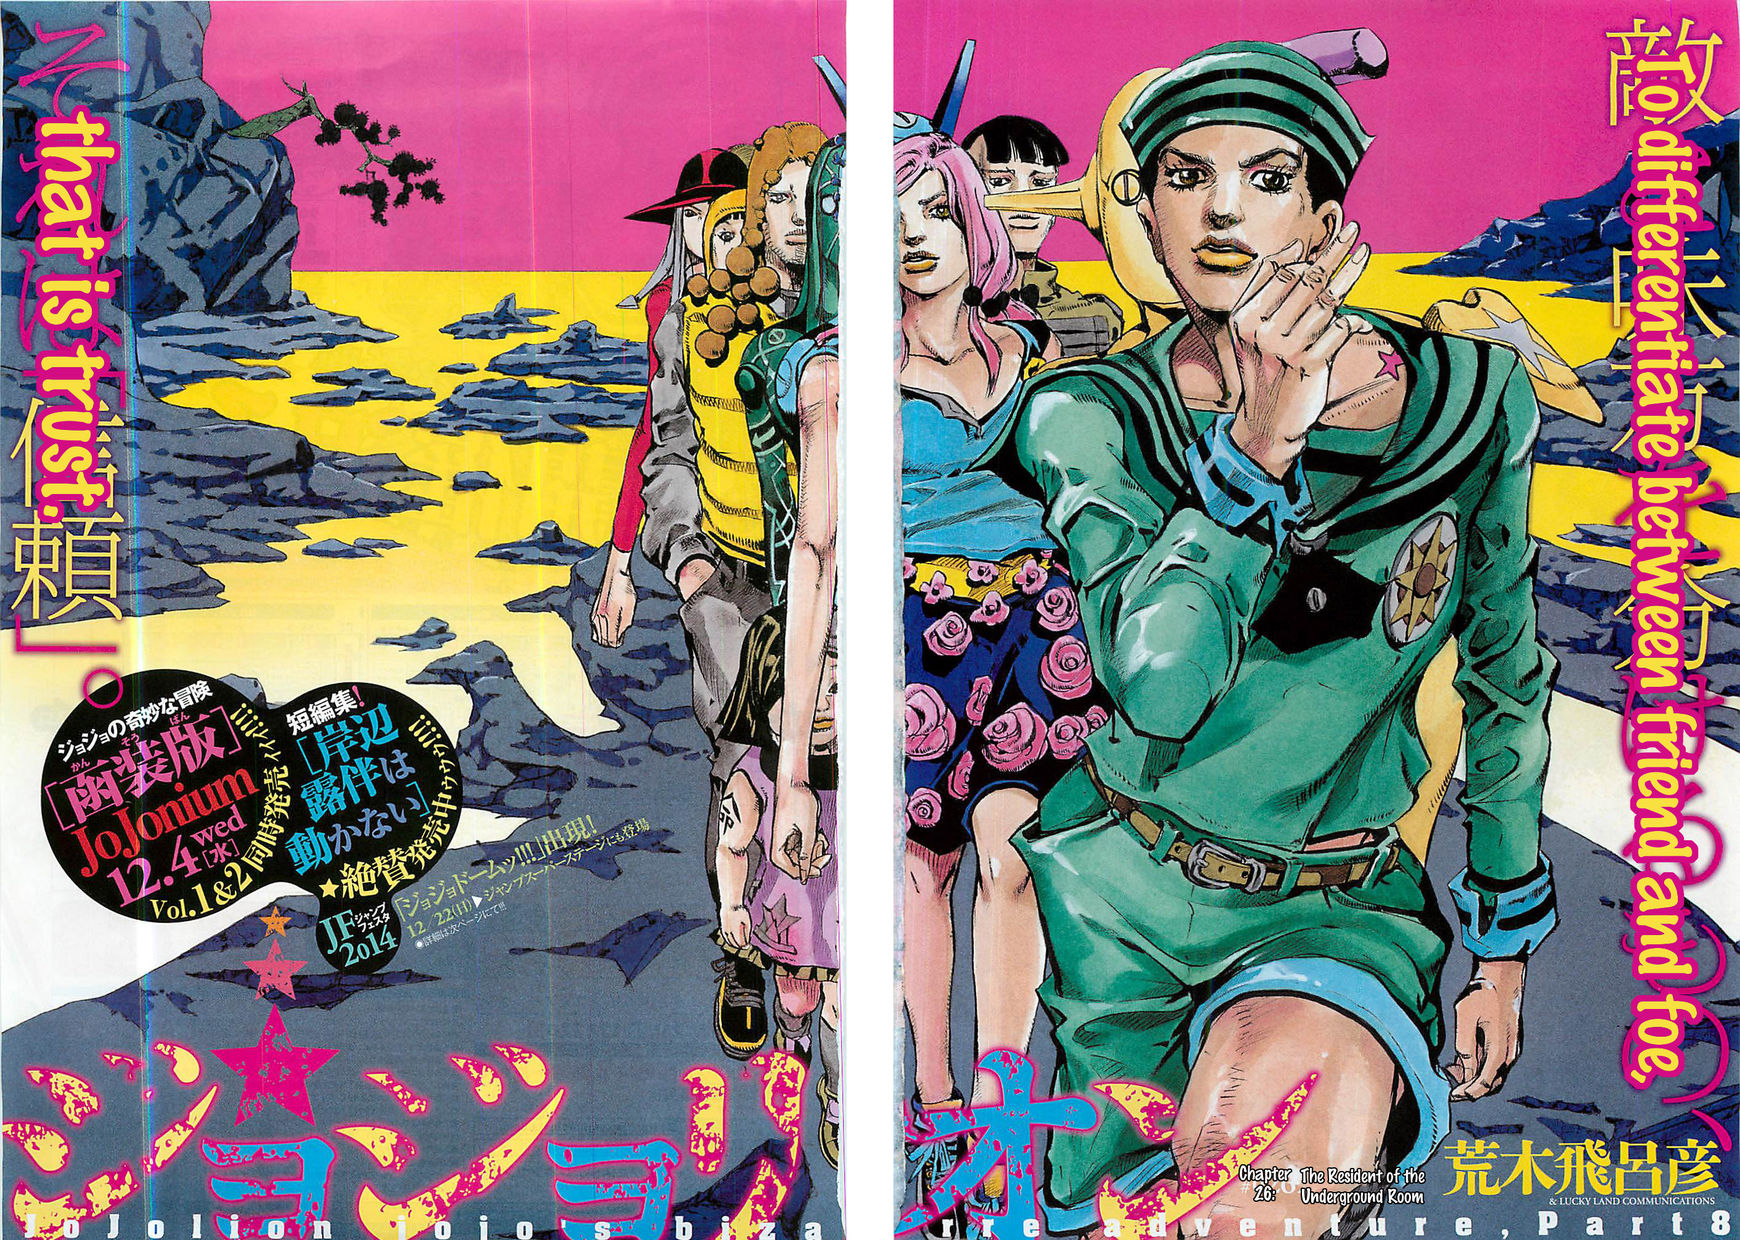 Jojos Bizarre Adventure Part 8 Jojolion 26 Page 2